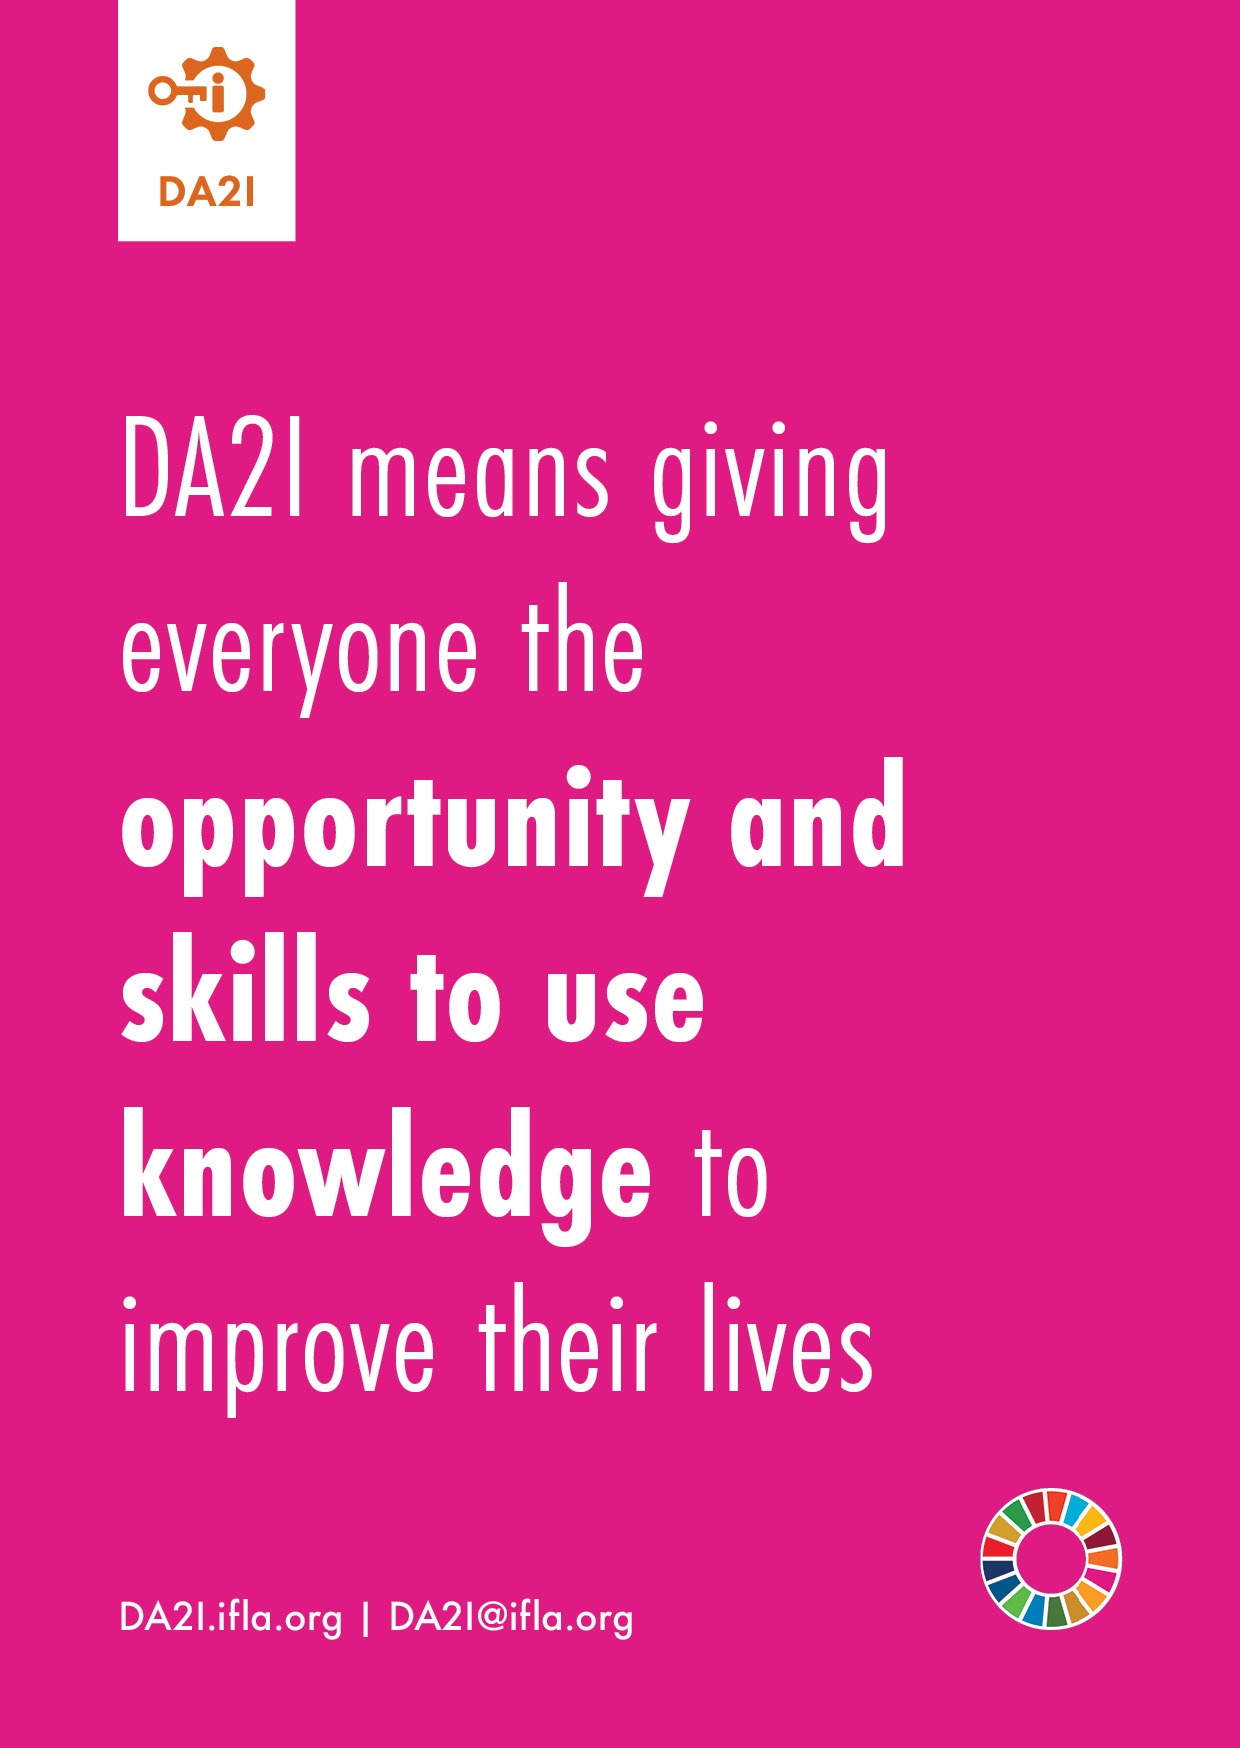 DA2I means giving everyone the opportunity and skills to use knowledge to improve their lives